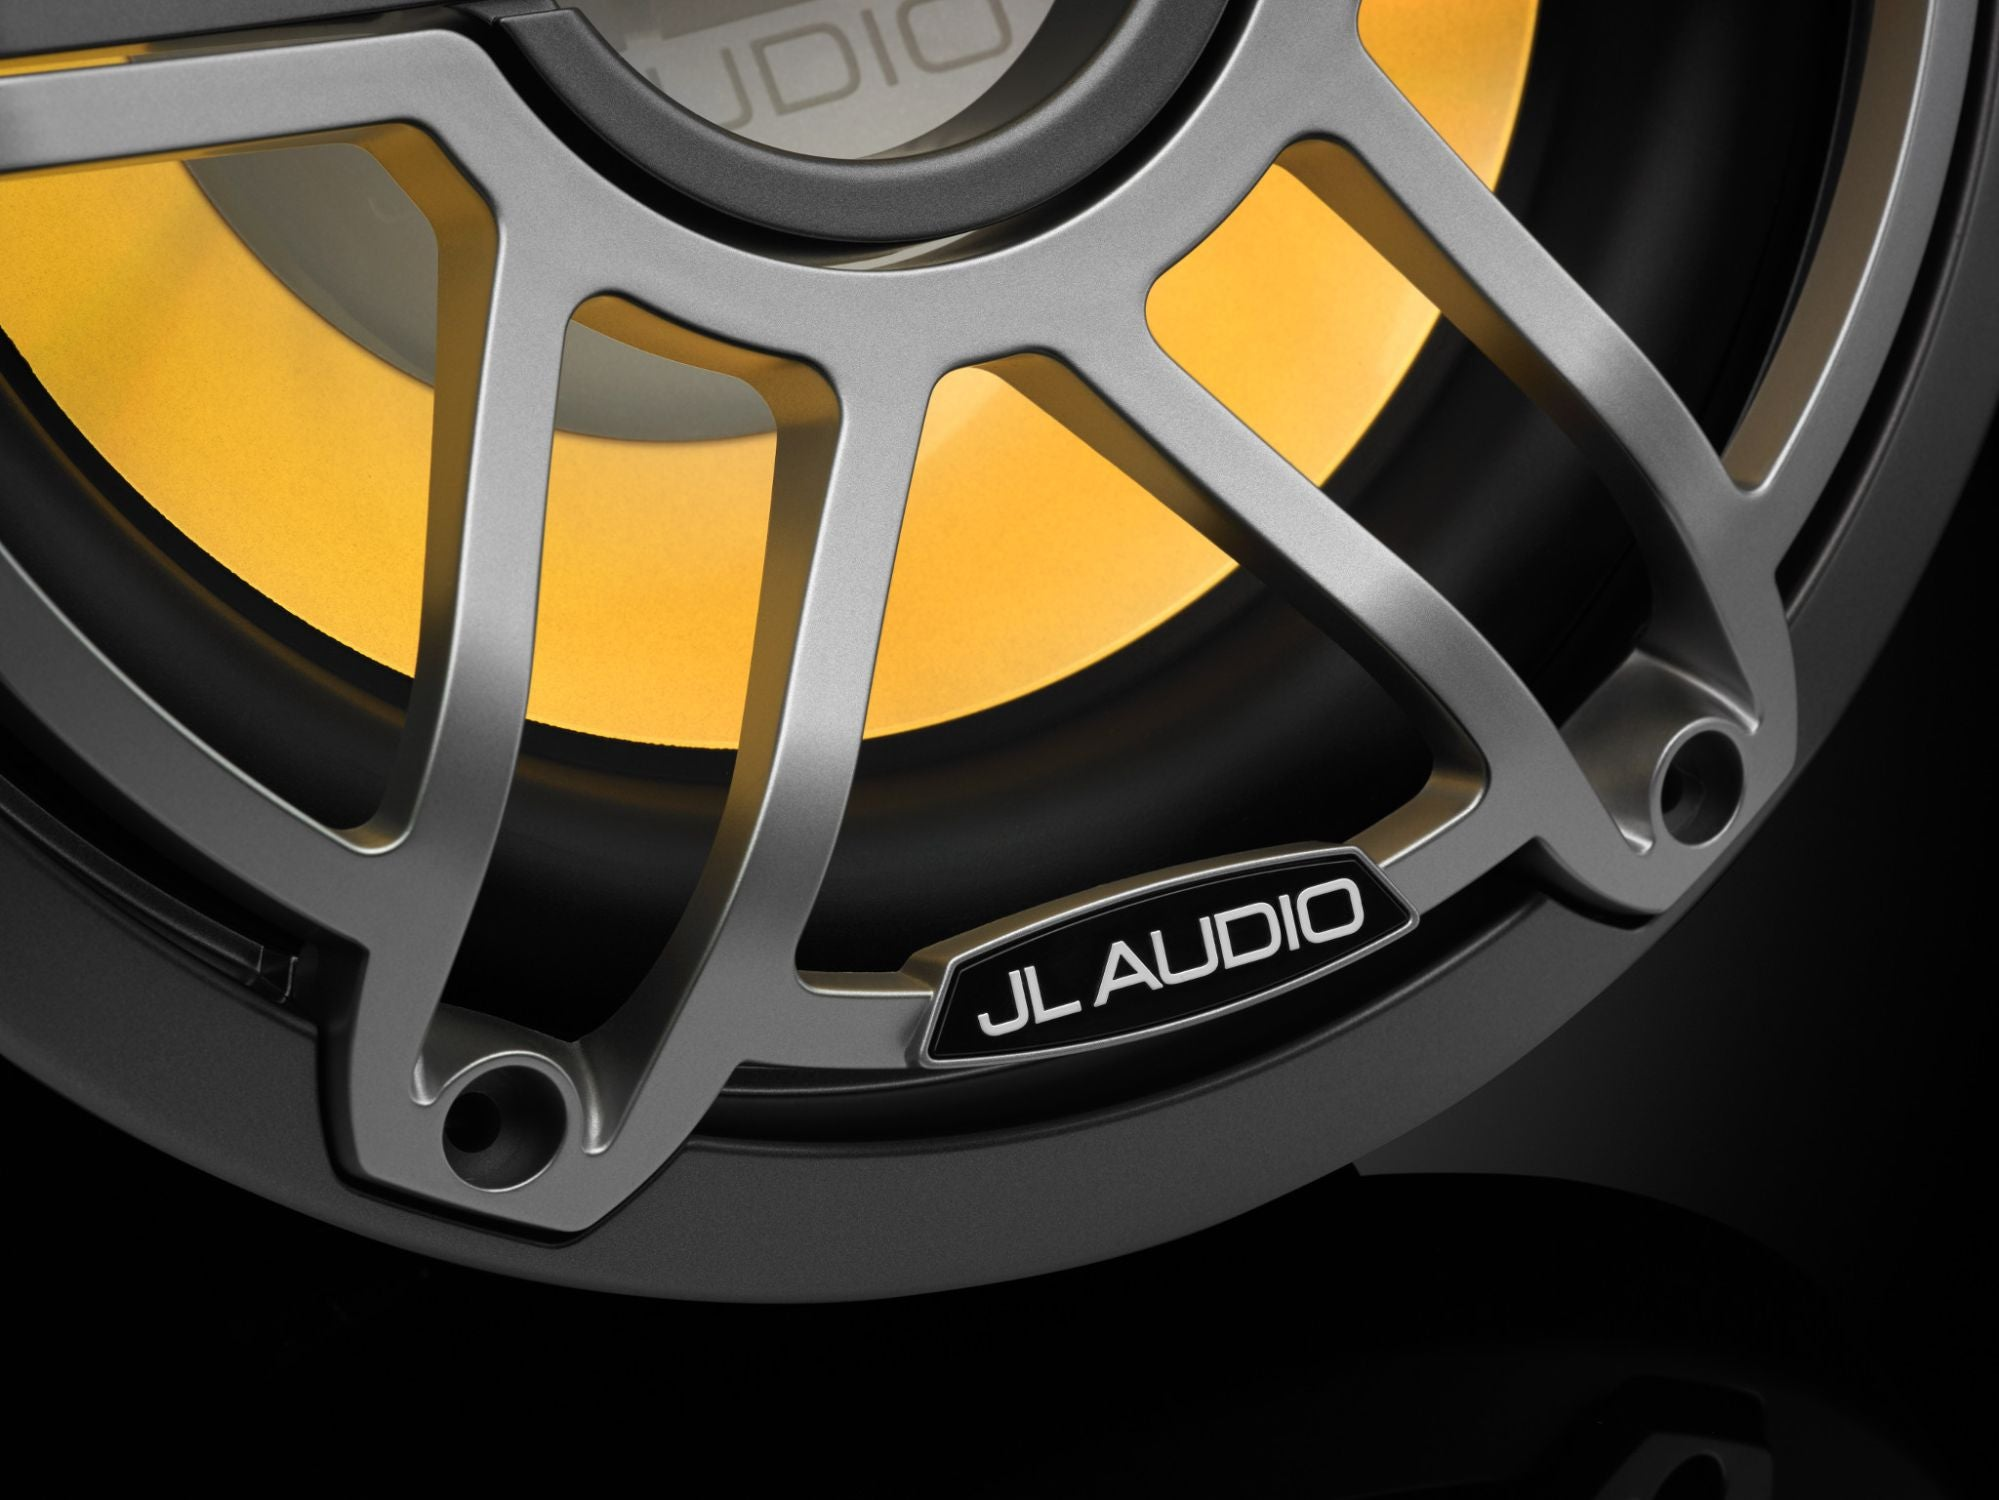 Detail of M6-10IB-S-GmTi-i-4 Subwoofer Lit with Yellow